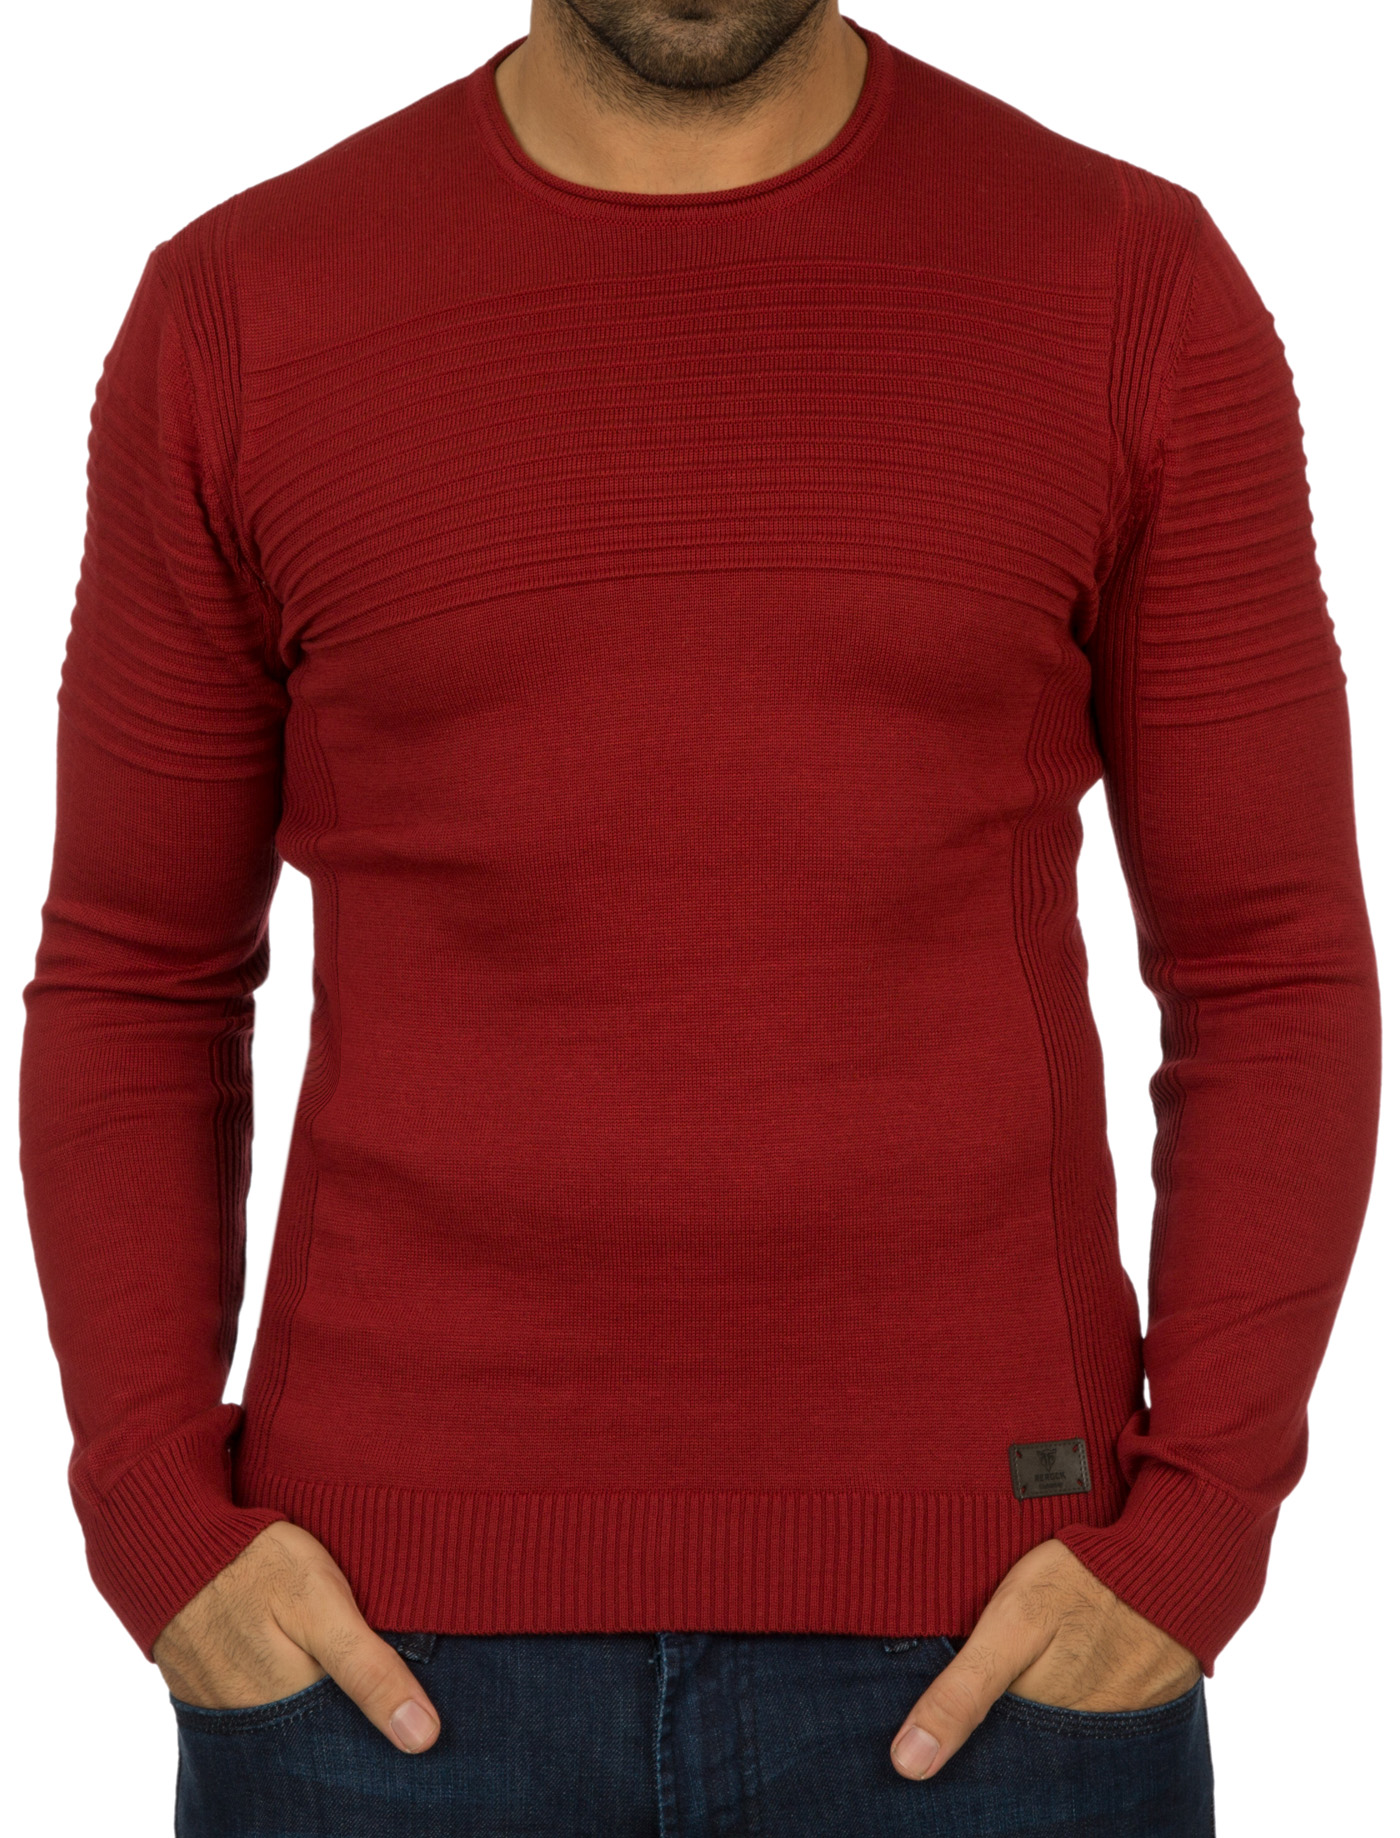 Strick Pullover